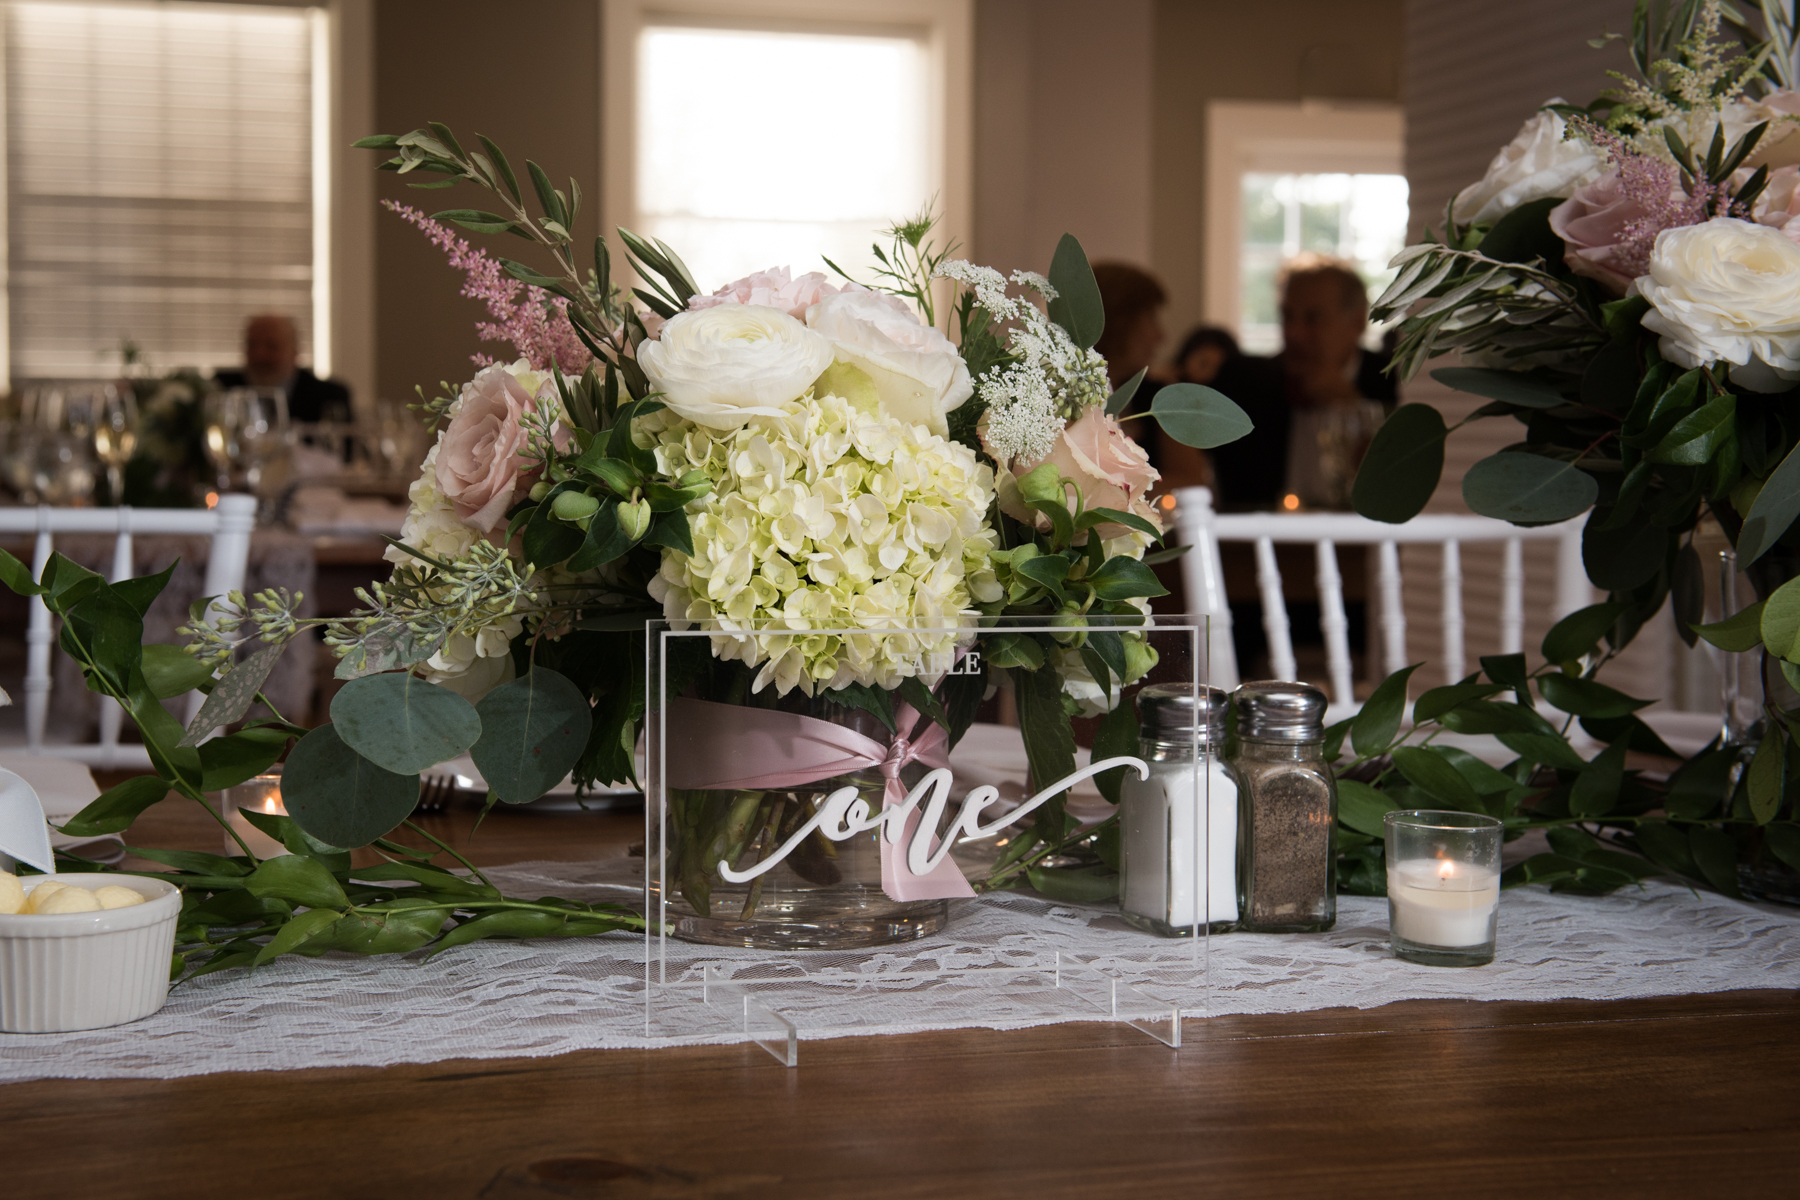 Newagen Seaside Inn Weddings in Southport, Maine by Peter Greeno Photography